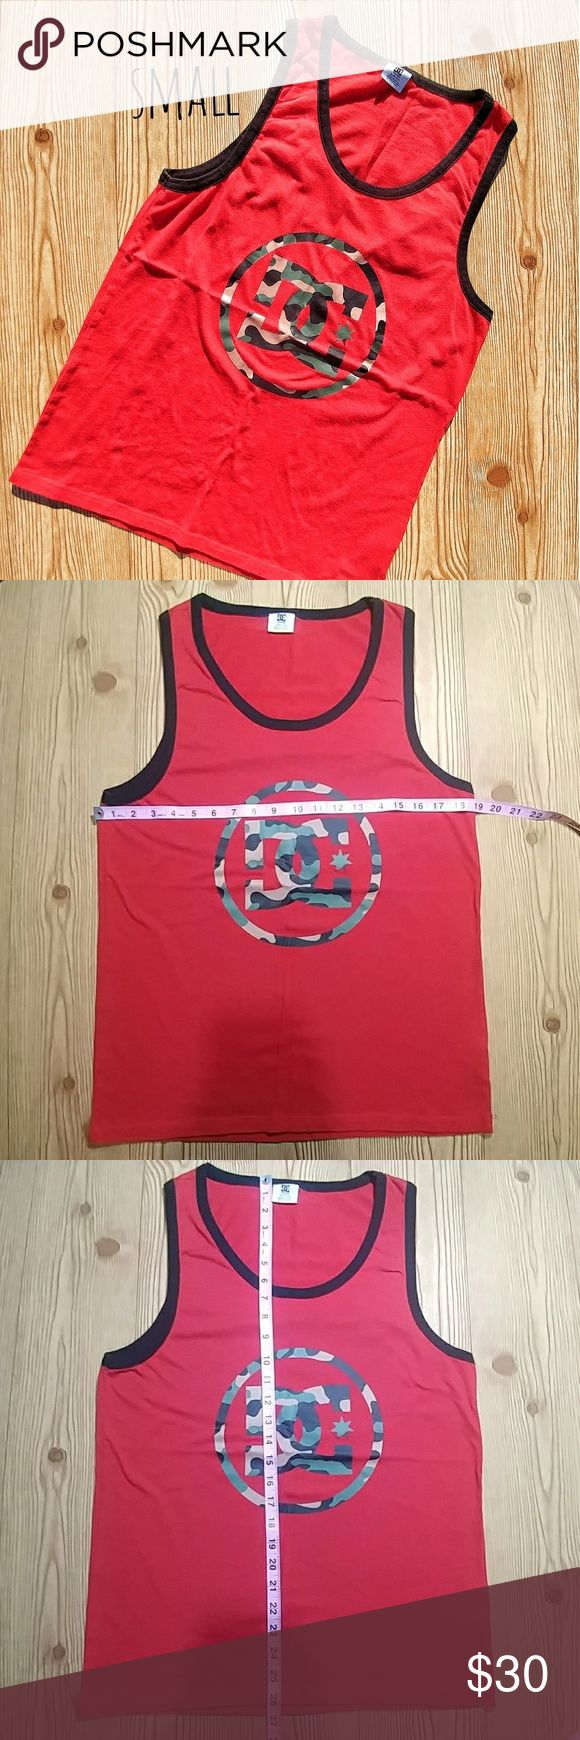 🔵DC Red Black Camo Tank Top(S) Pretty much brand new tank top. Very soft and has stretch. Polyester cotton mix. Size small. DC Shirts Tank Tops